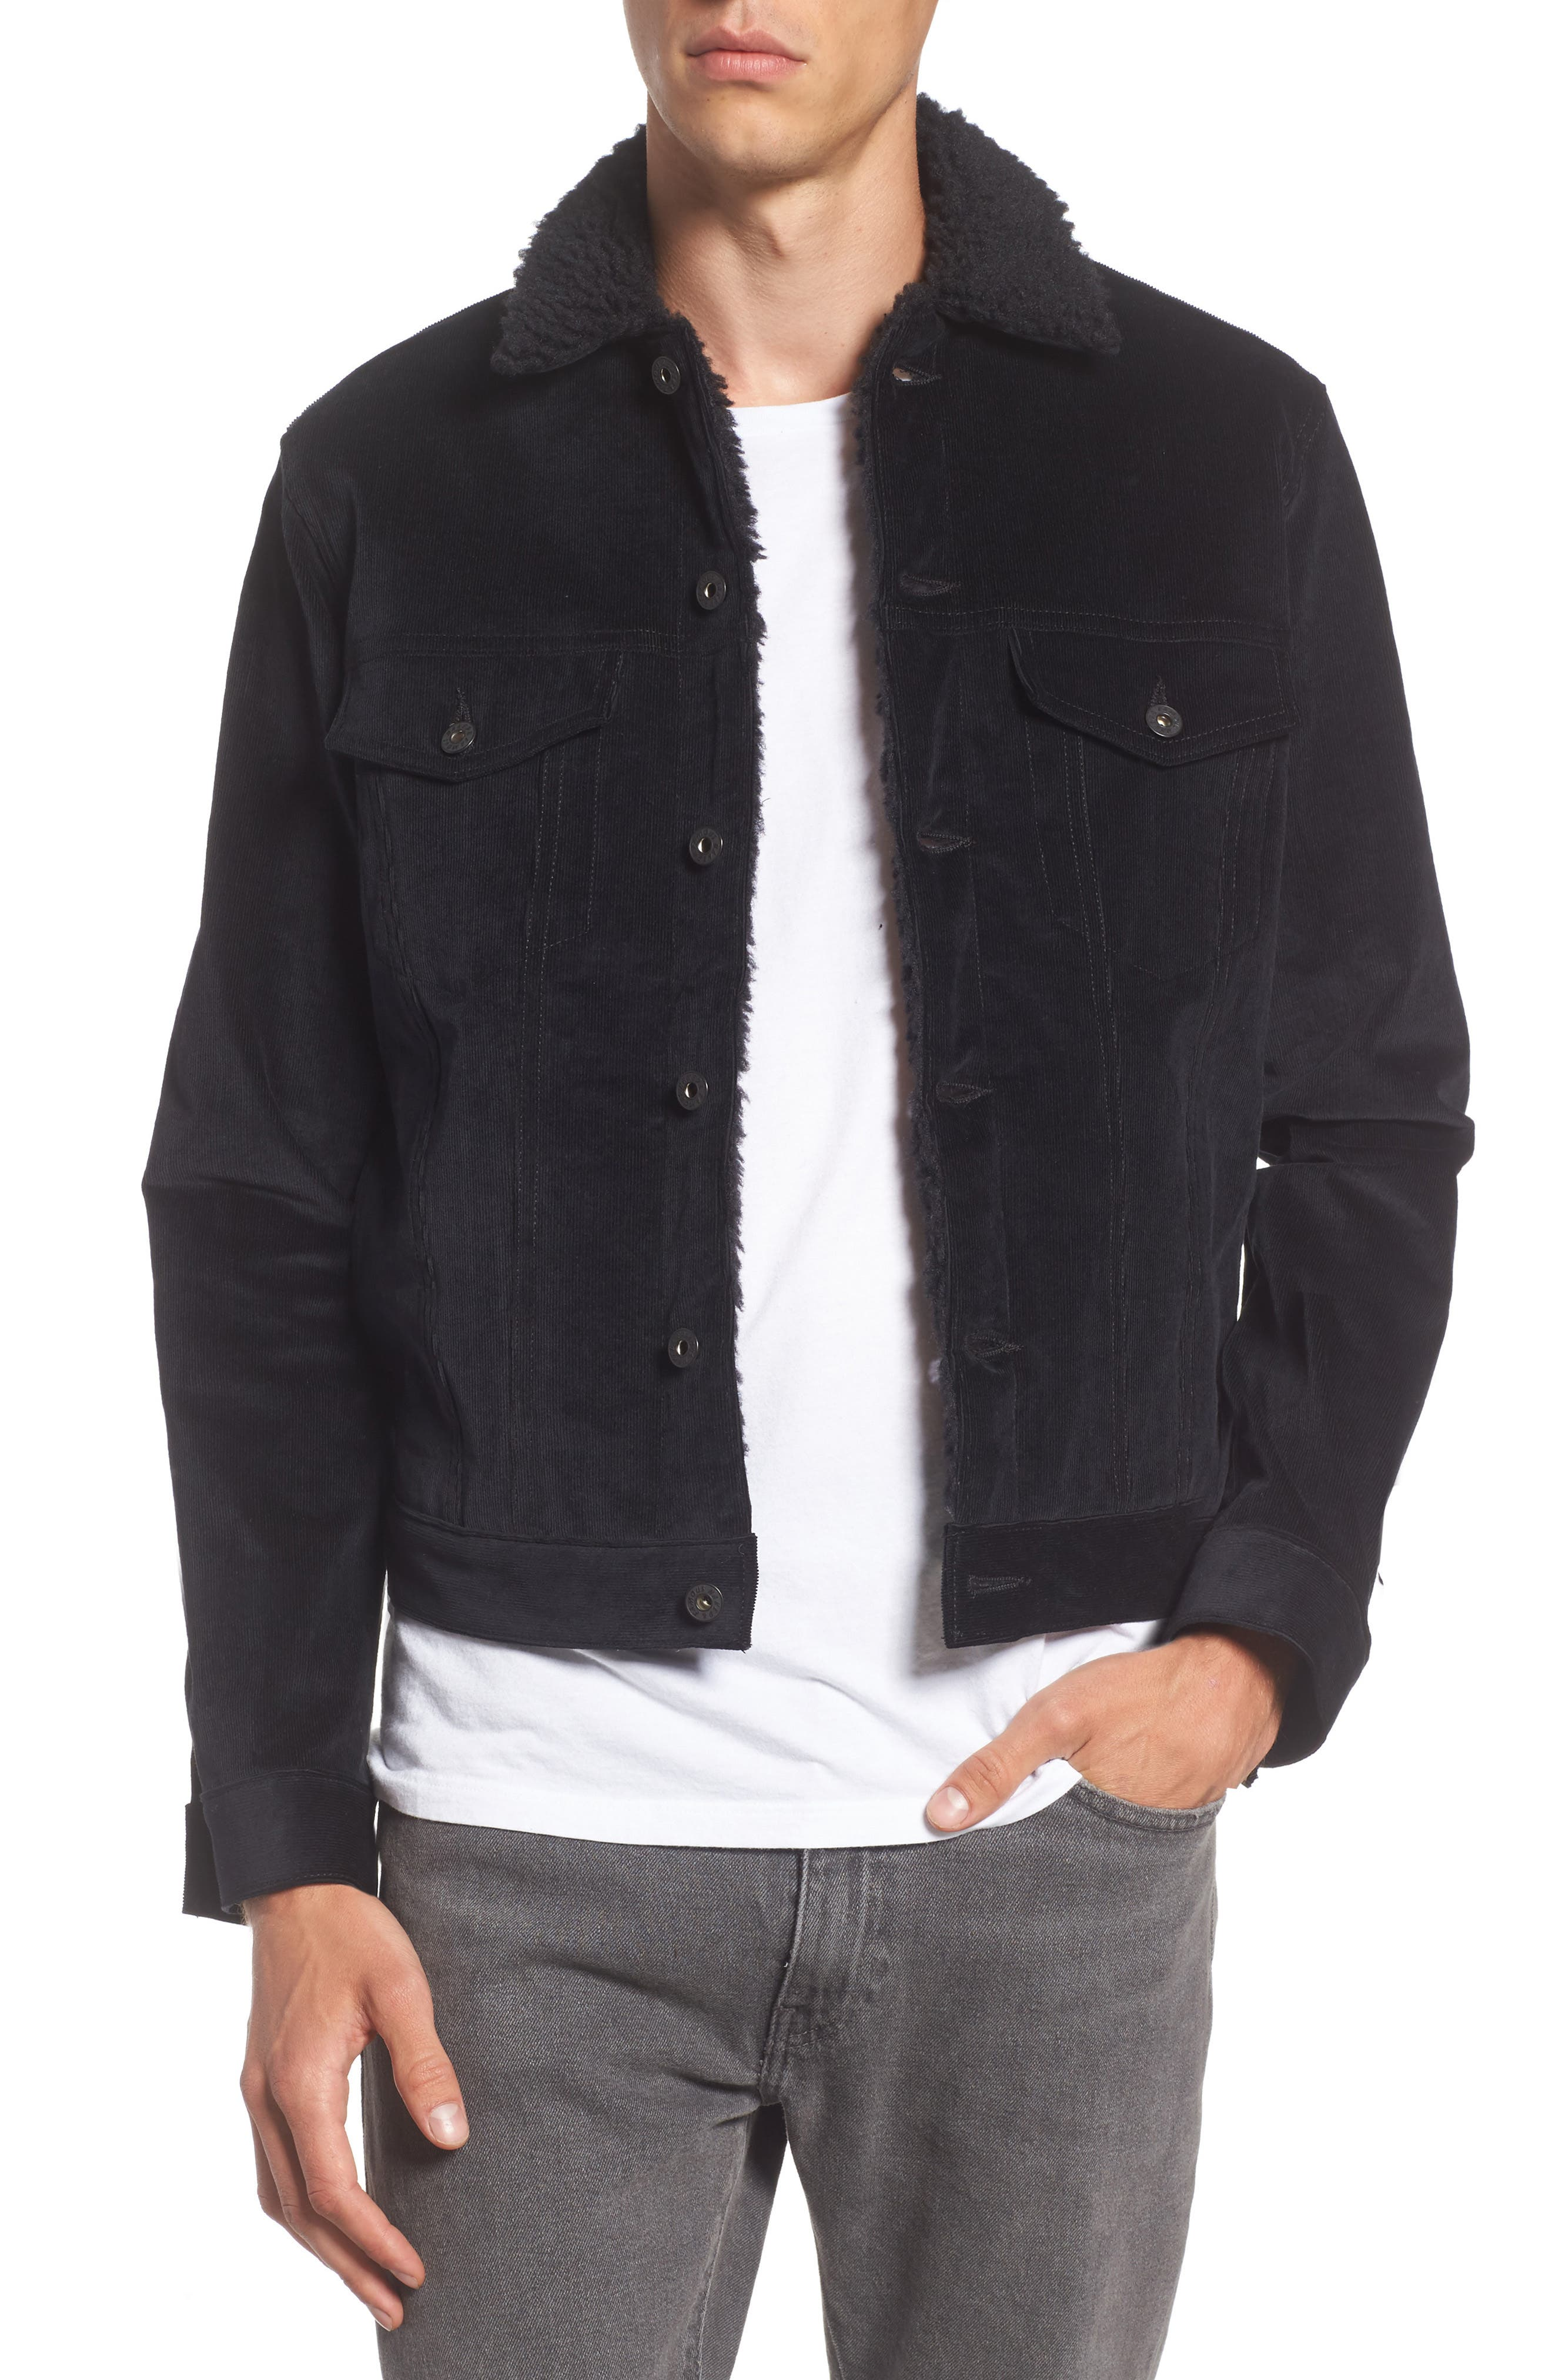 Main Image - Naked & Famous Denim Corduroy Jacket with Faux Shearling Trim